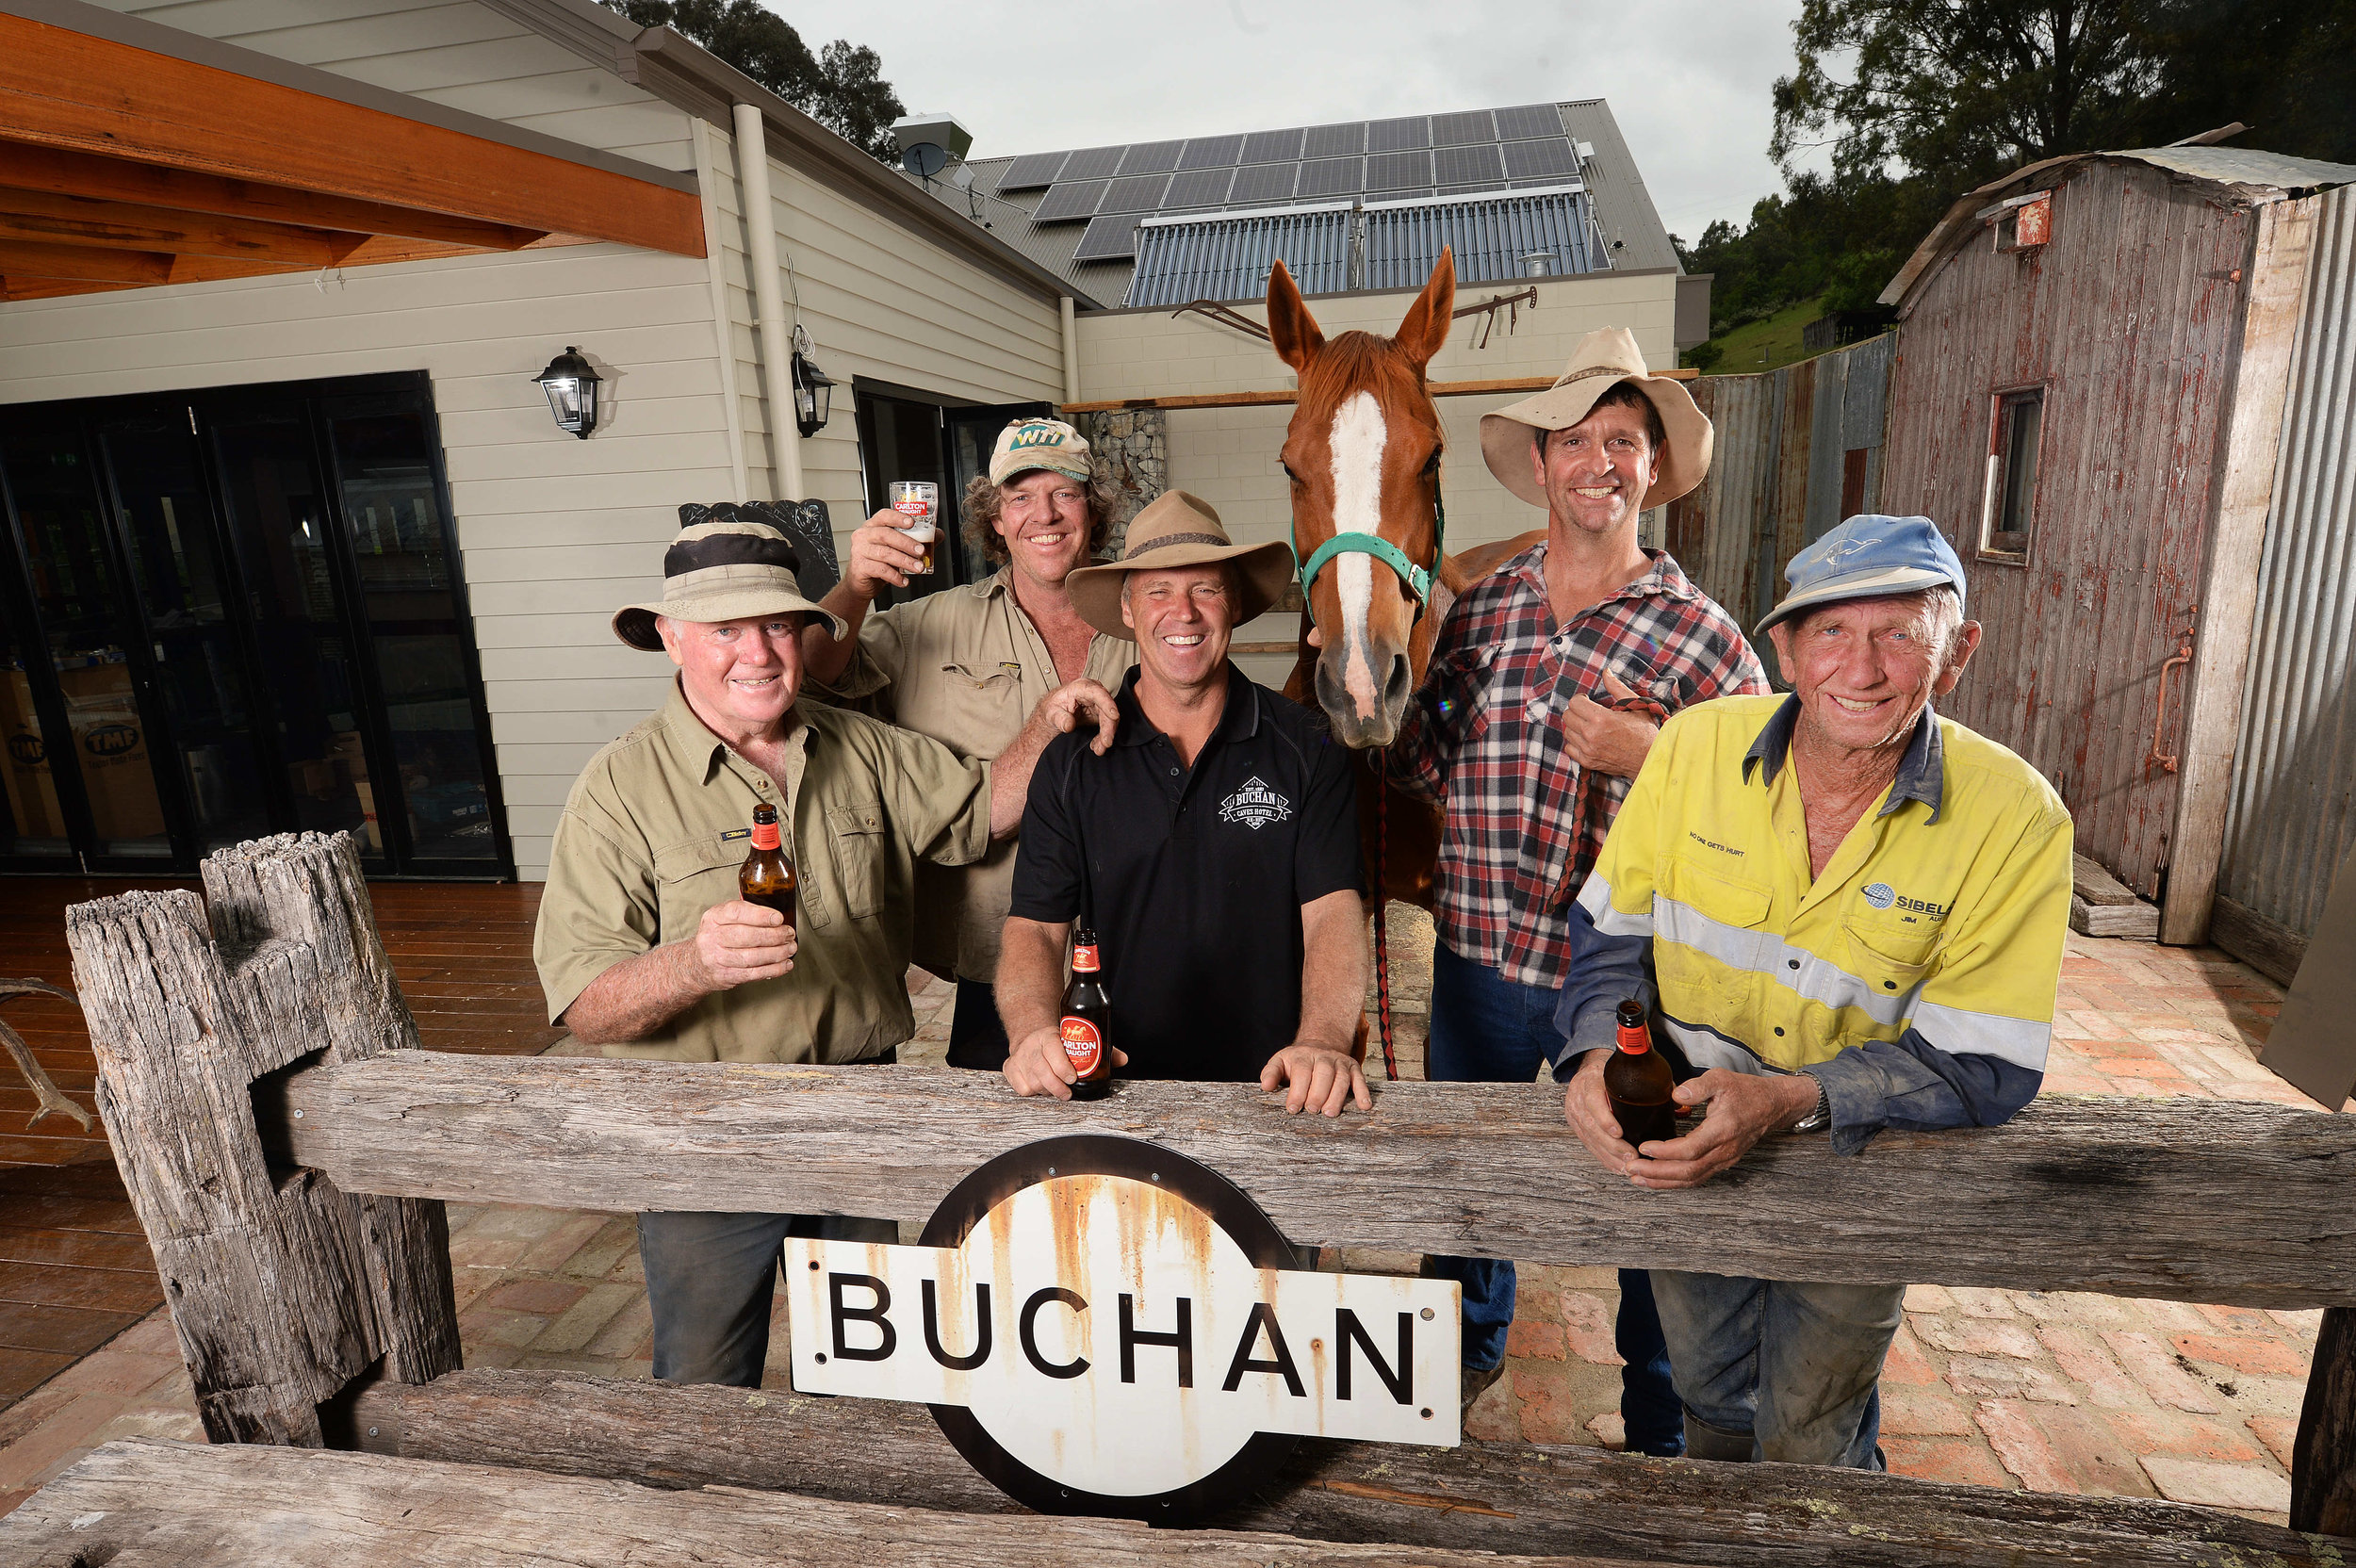 CHP_Export_148296239_Locals get ready for the opening next Friday of the  Buchan Pub   after bur.jpg